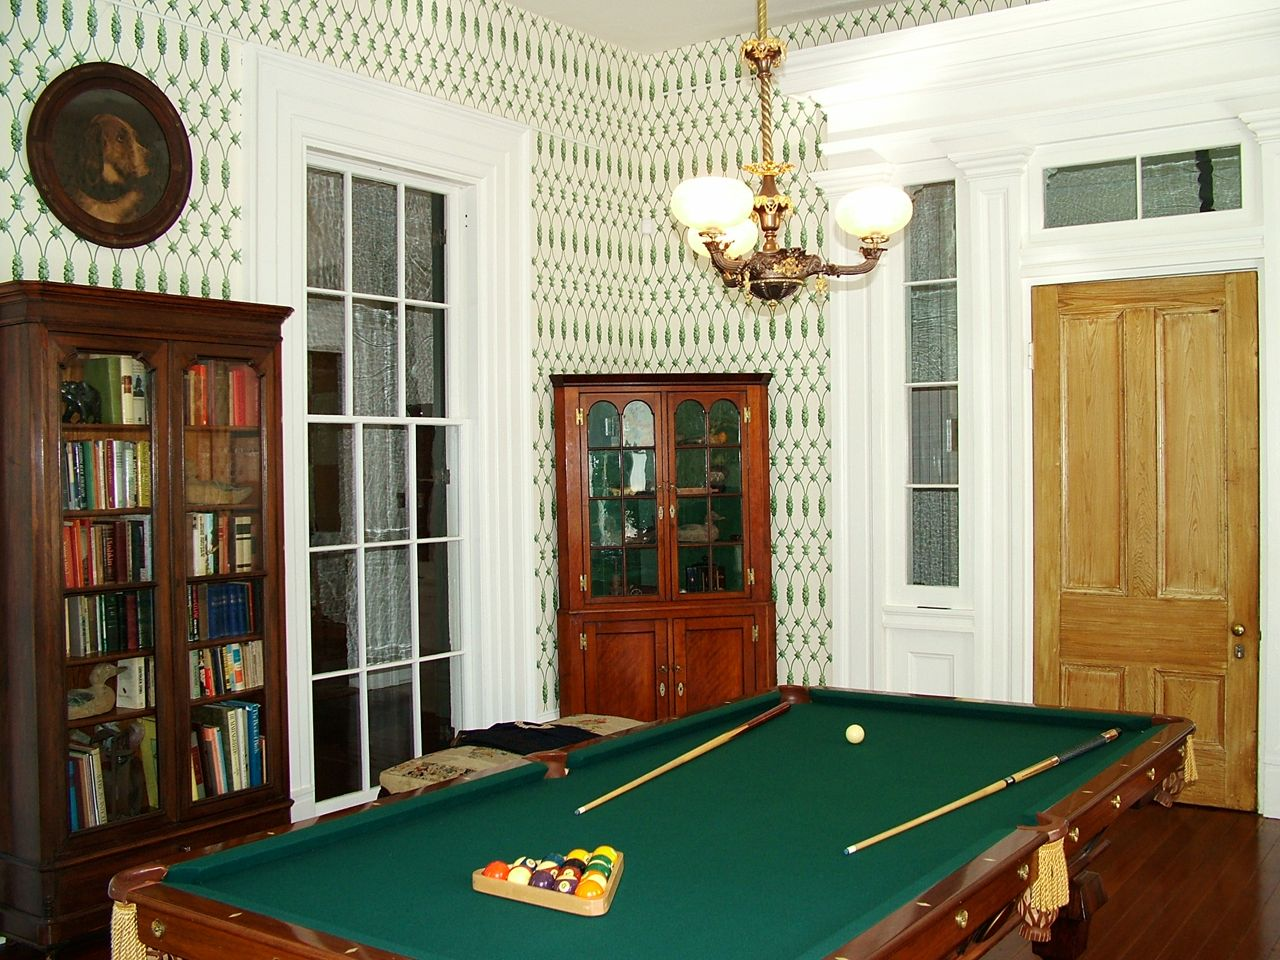 Bed and Breakfast, Natchez MS, Stone House